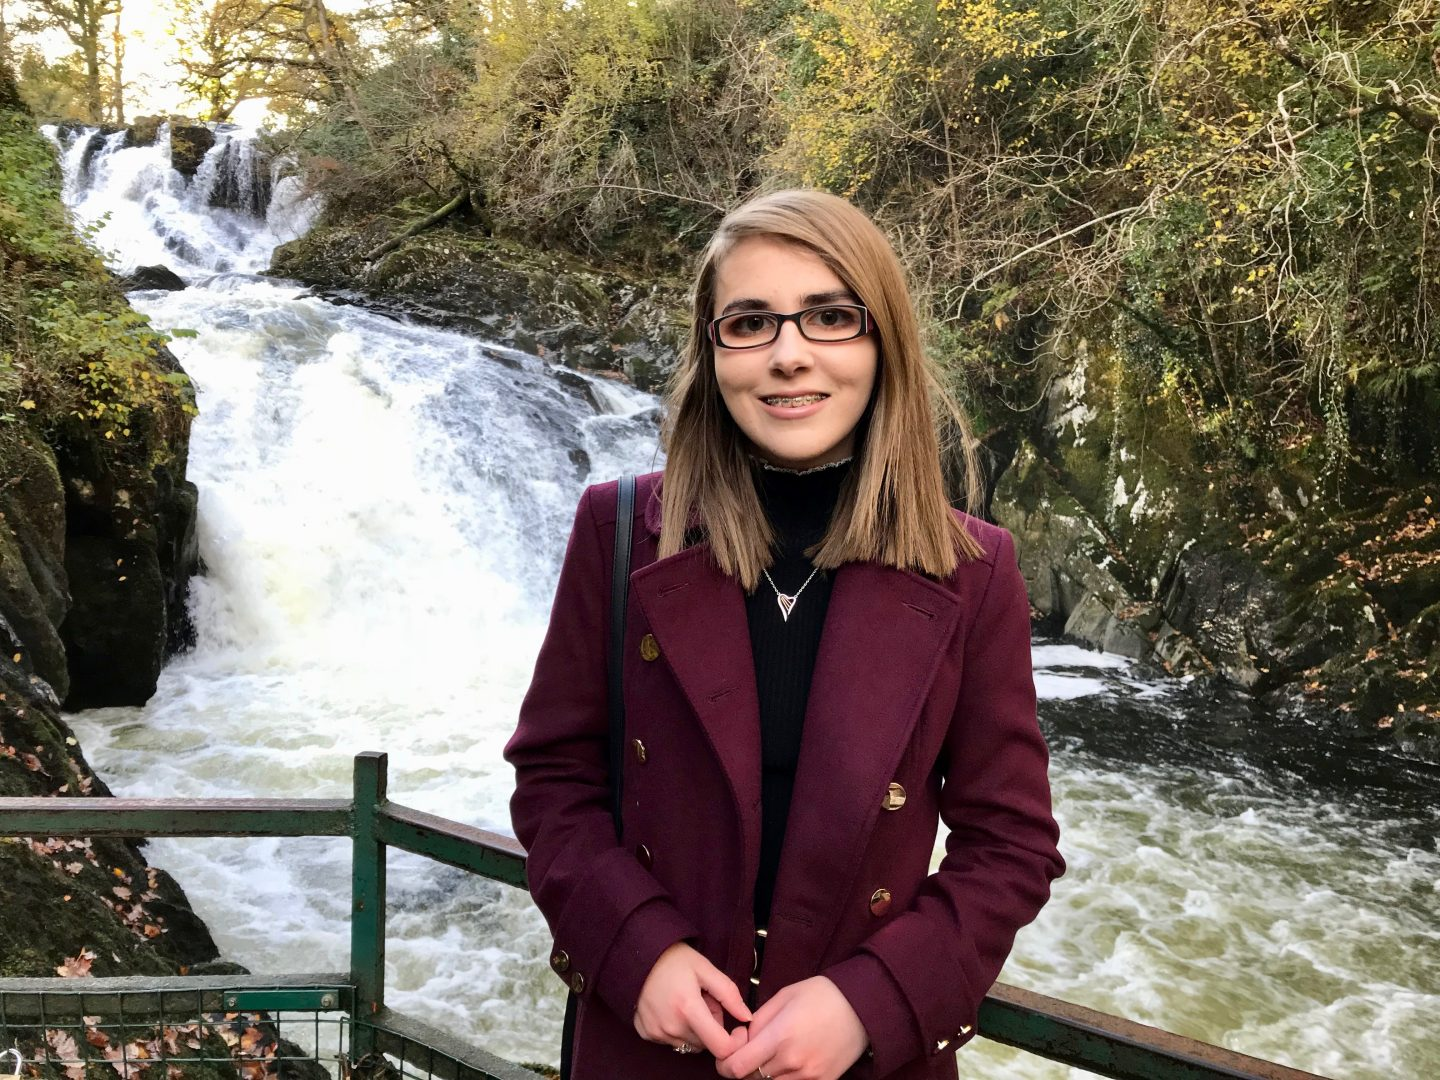 A photo of Elin in front of a waterfall